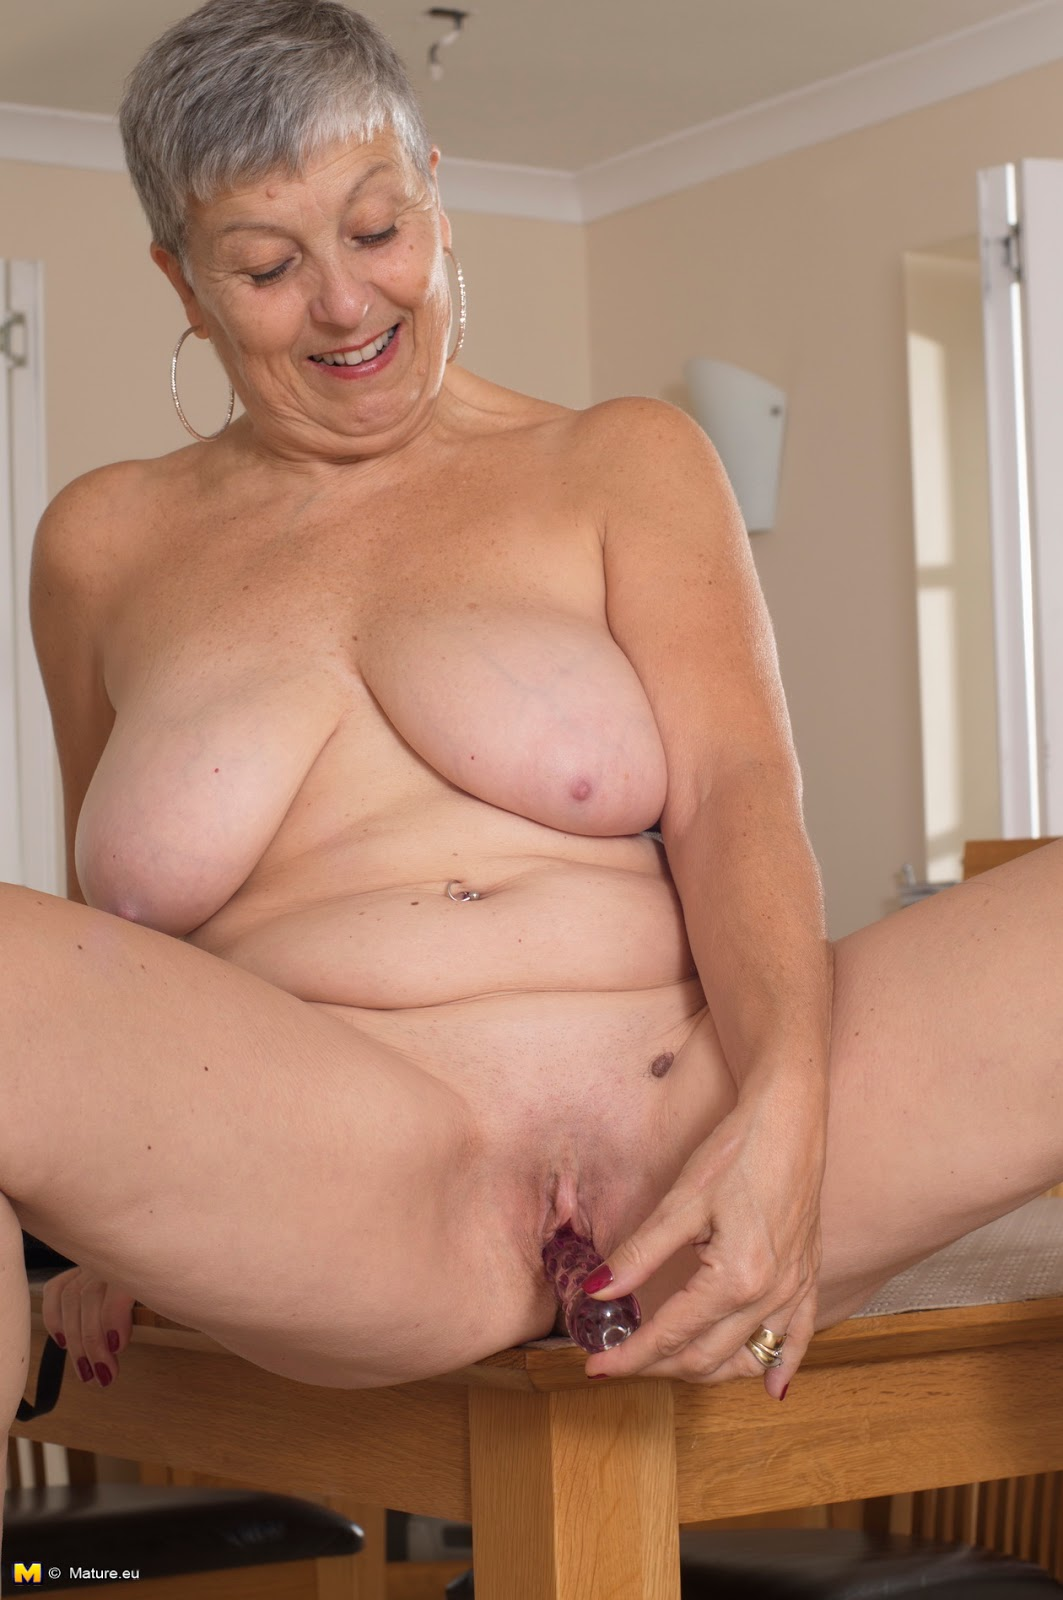 Are photo mature nude uk think, that